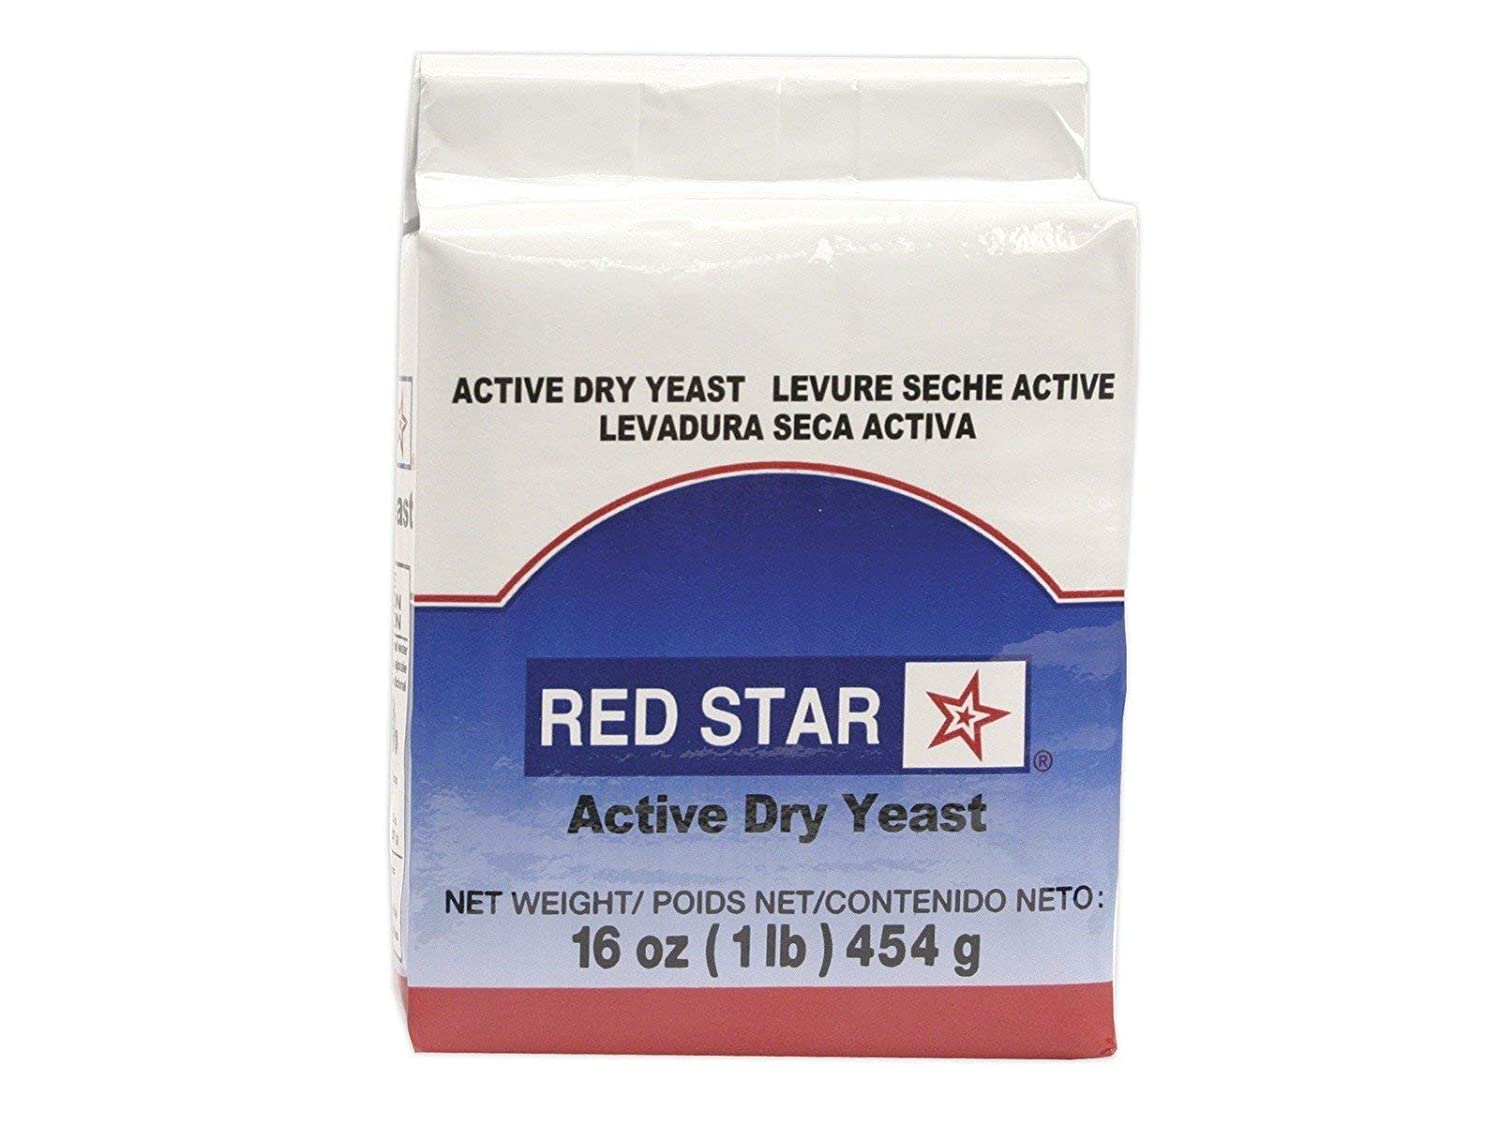 B003EE0CHA Red Star Active Dry Yeast 16 oz (1 pound) size 71j-cuDF9IL